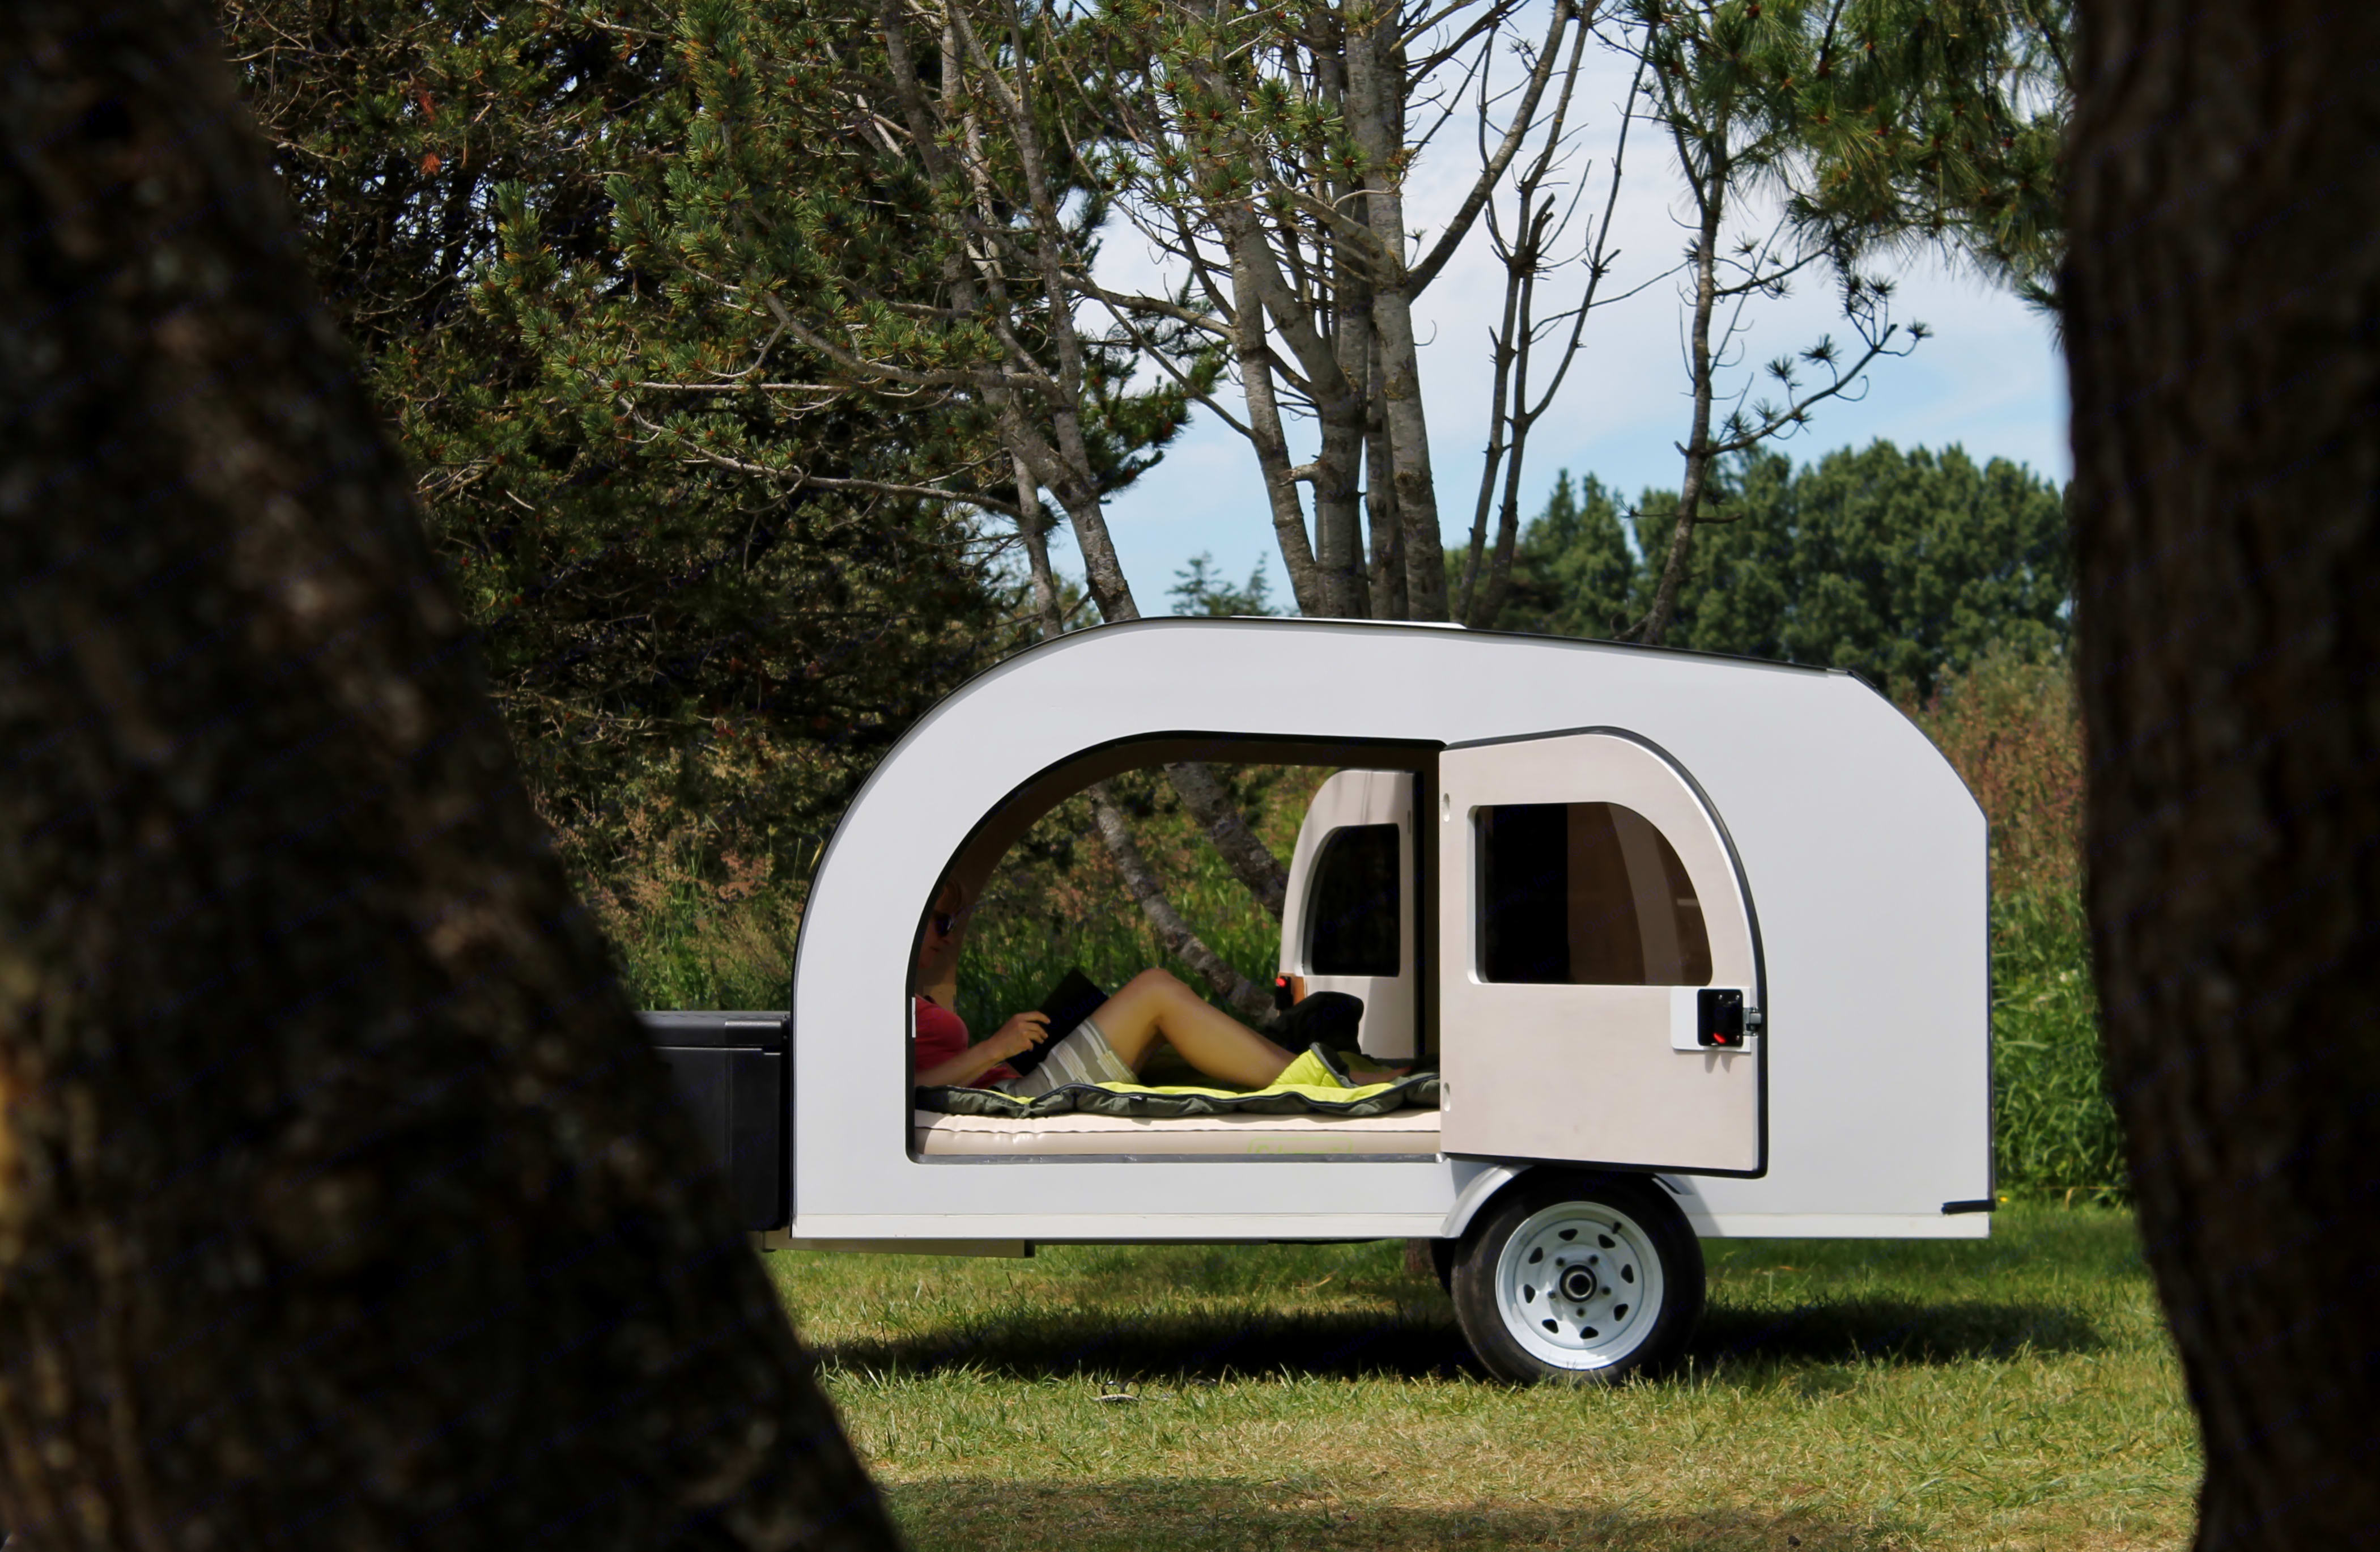 Spacious, bright interior. Queen size mattress and full kitchen access from the trunk. Check specs on droplet-trailer.com. DROPLET 58 2017